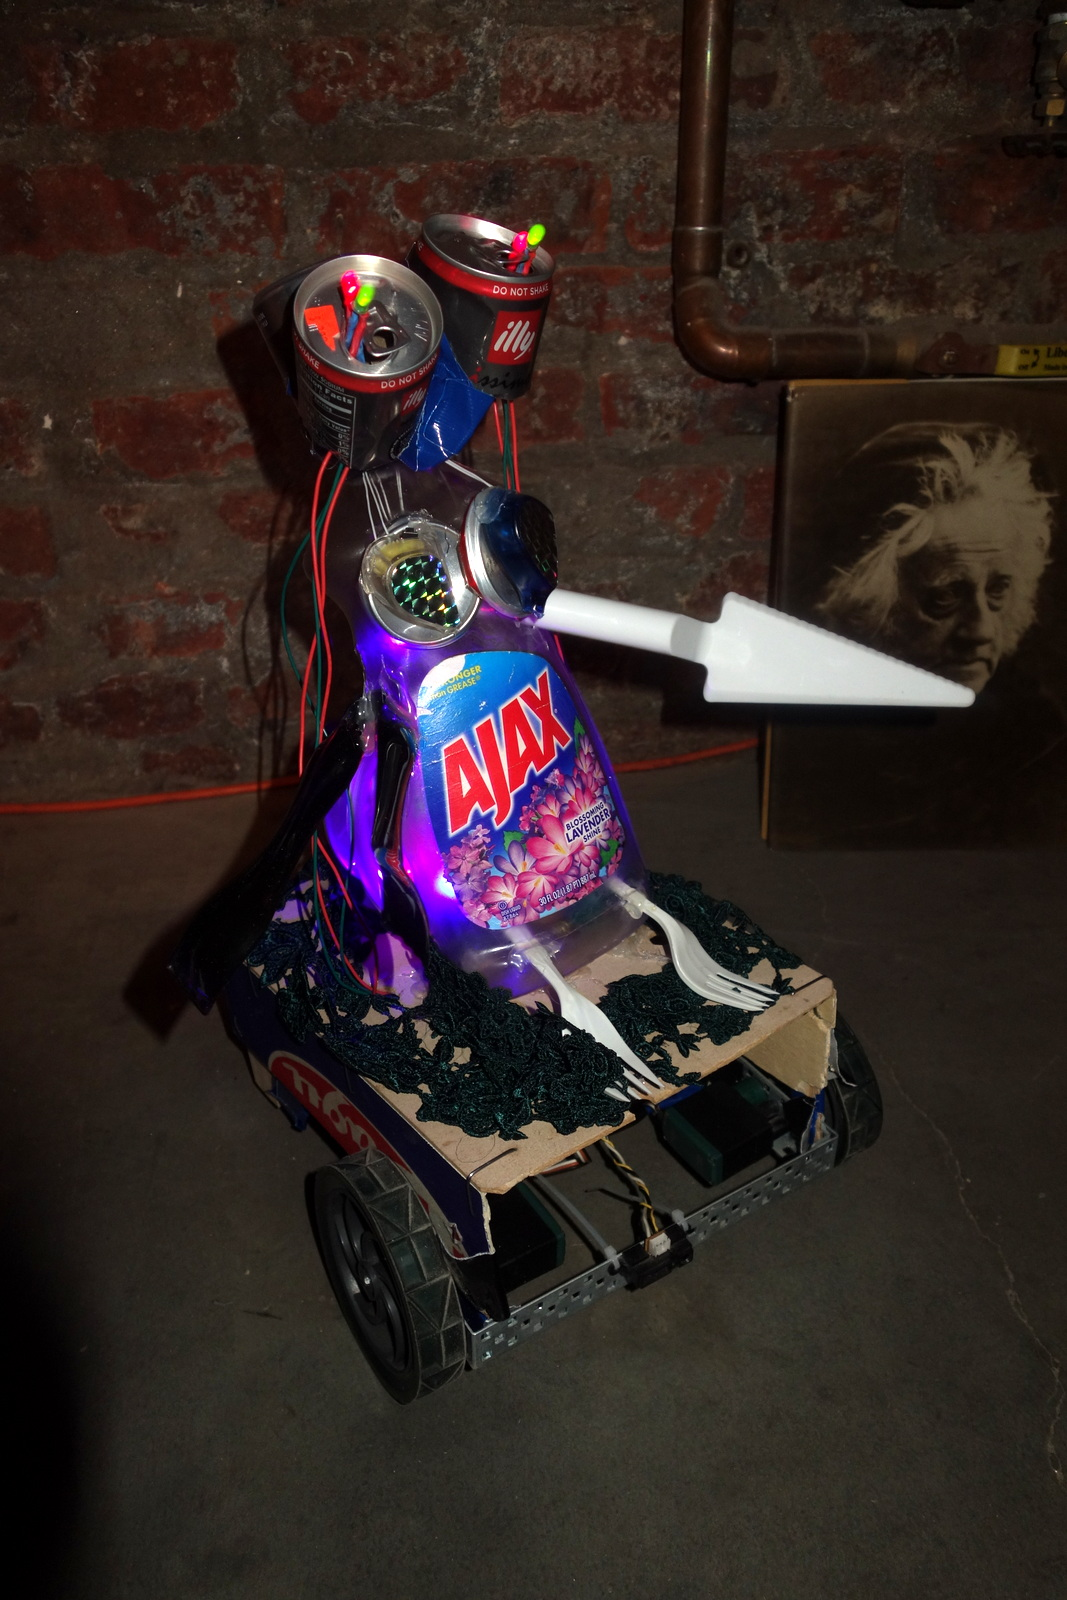 My silent favorite of the show wasn't operating optimally, but I know where this one comes from. Monster Mash by Olivia Barr and Ariel Cotton turned upcycled junk into a creature from the Gowanus Canal, a nearby Superfund site with record levels of pollutants.